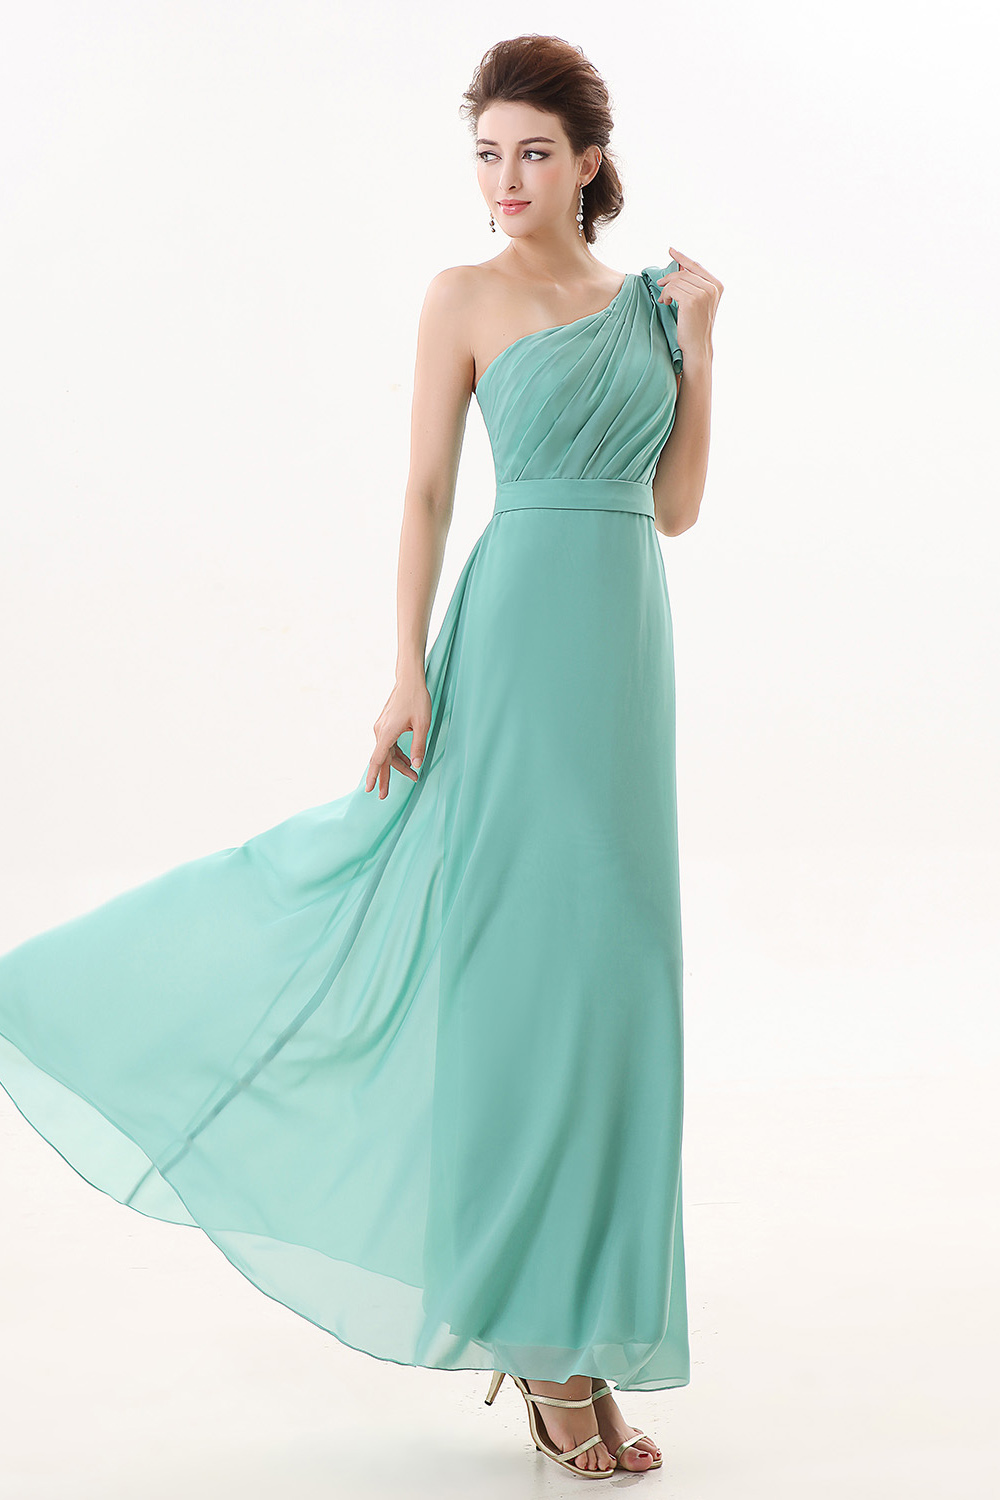 Sheath/Columnn One Shoulder Ankle-length Chiffon Bridesmaid Dress